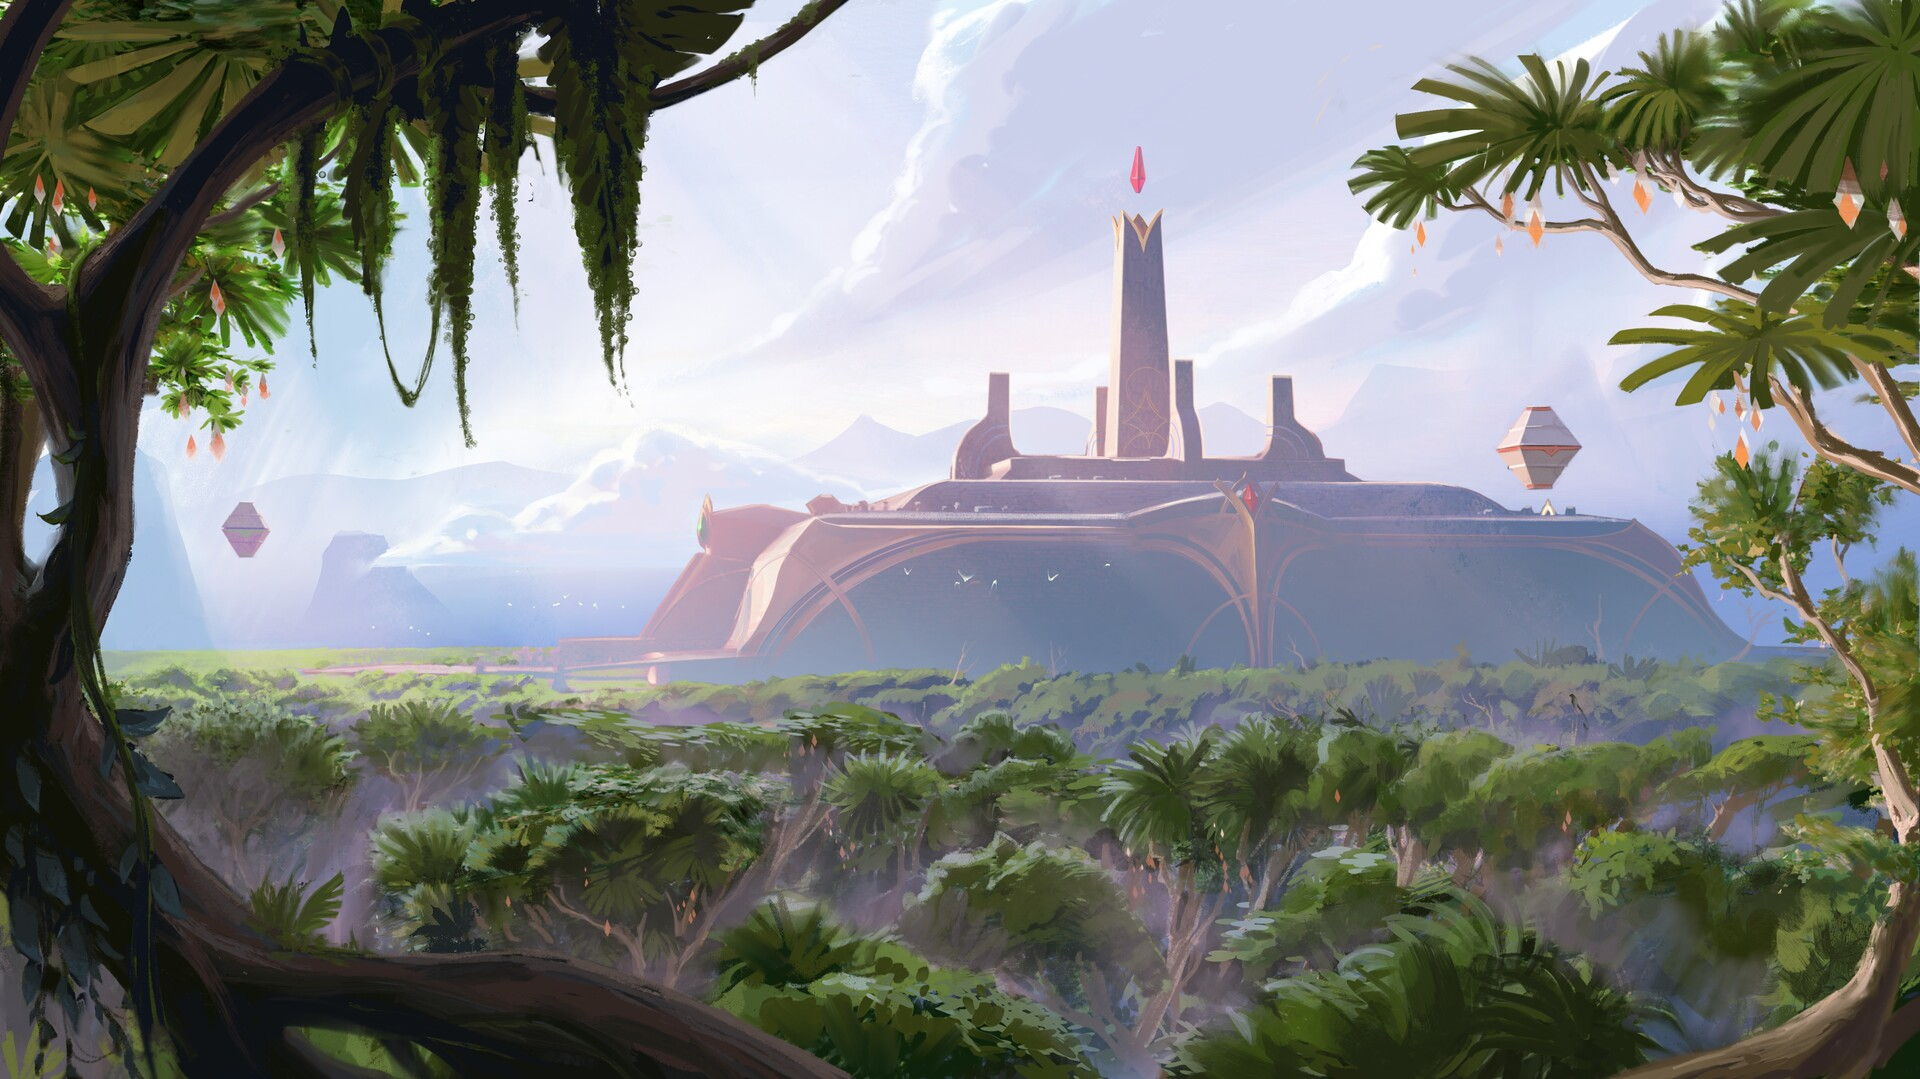 In truth, Ixtal is not the uninhabited wilderness many imagine. Far from prying eyes and greedy hands, the sprawling arcologies of Ixaocan remain safely hidden by the deepest rainforests. The cardinal arcology, seat of the ruling Yun Tal caste, has stood